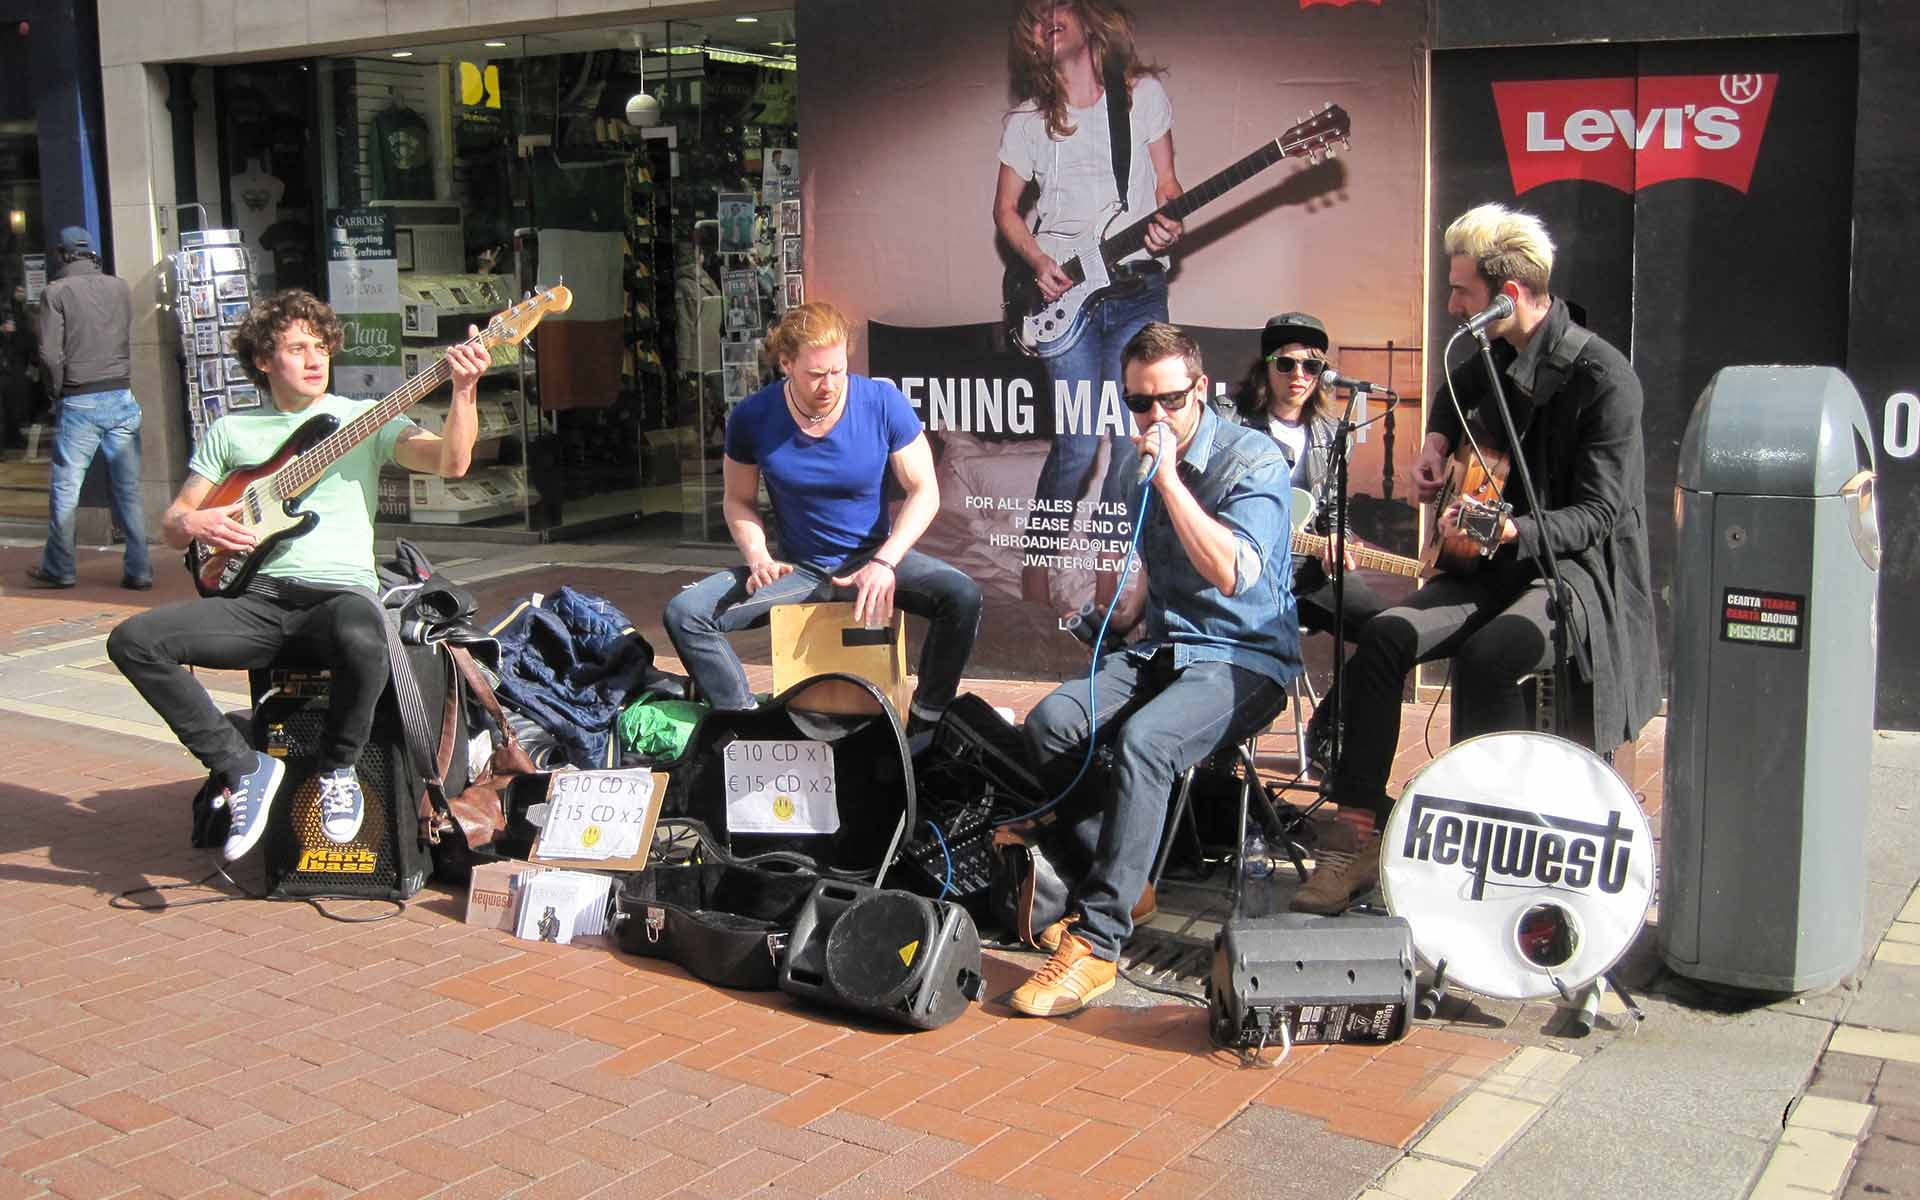 Bitcoin for Buskers - a Case Study in Micro-Transactions